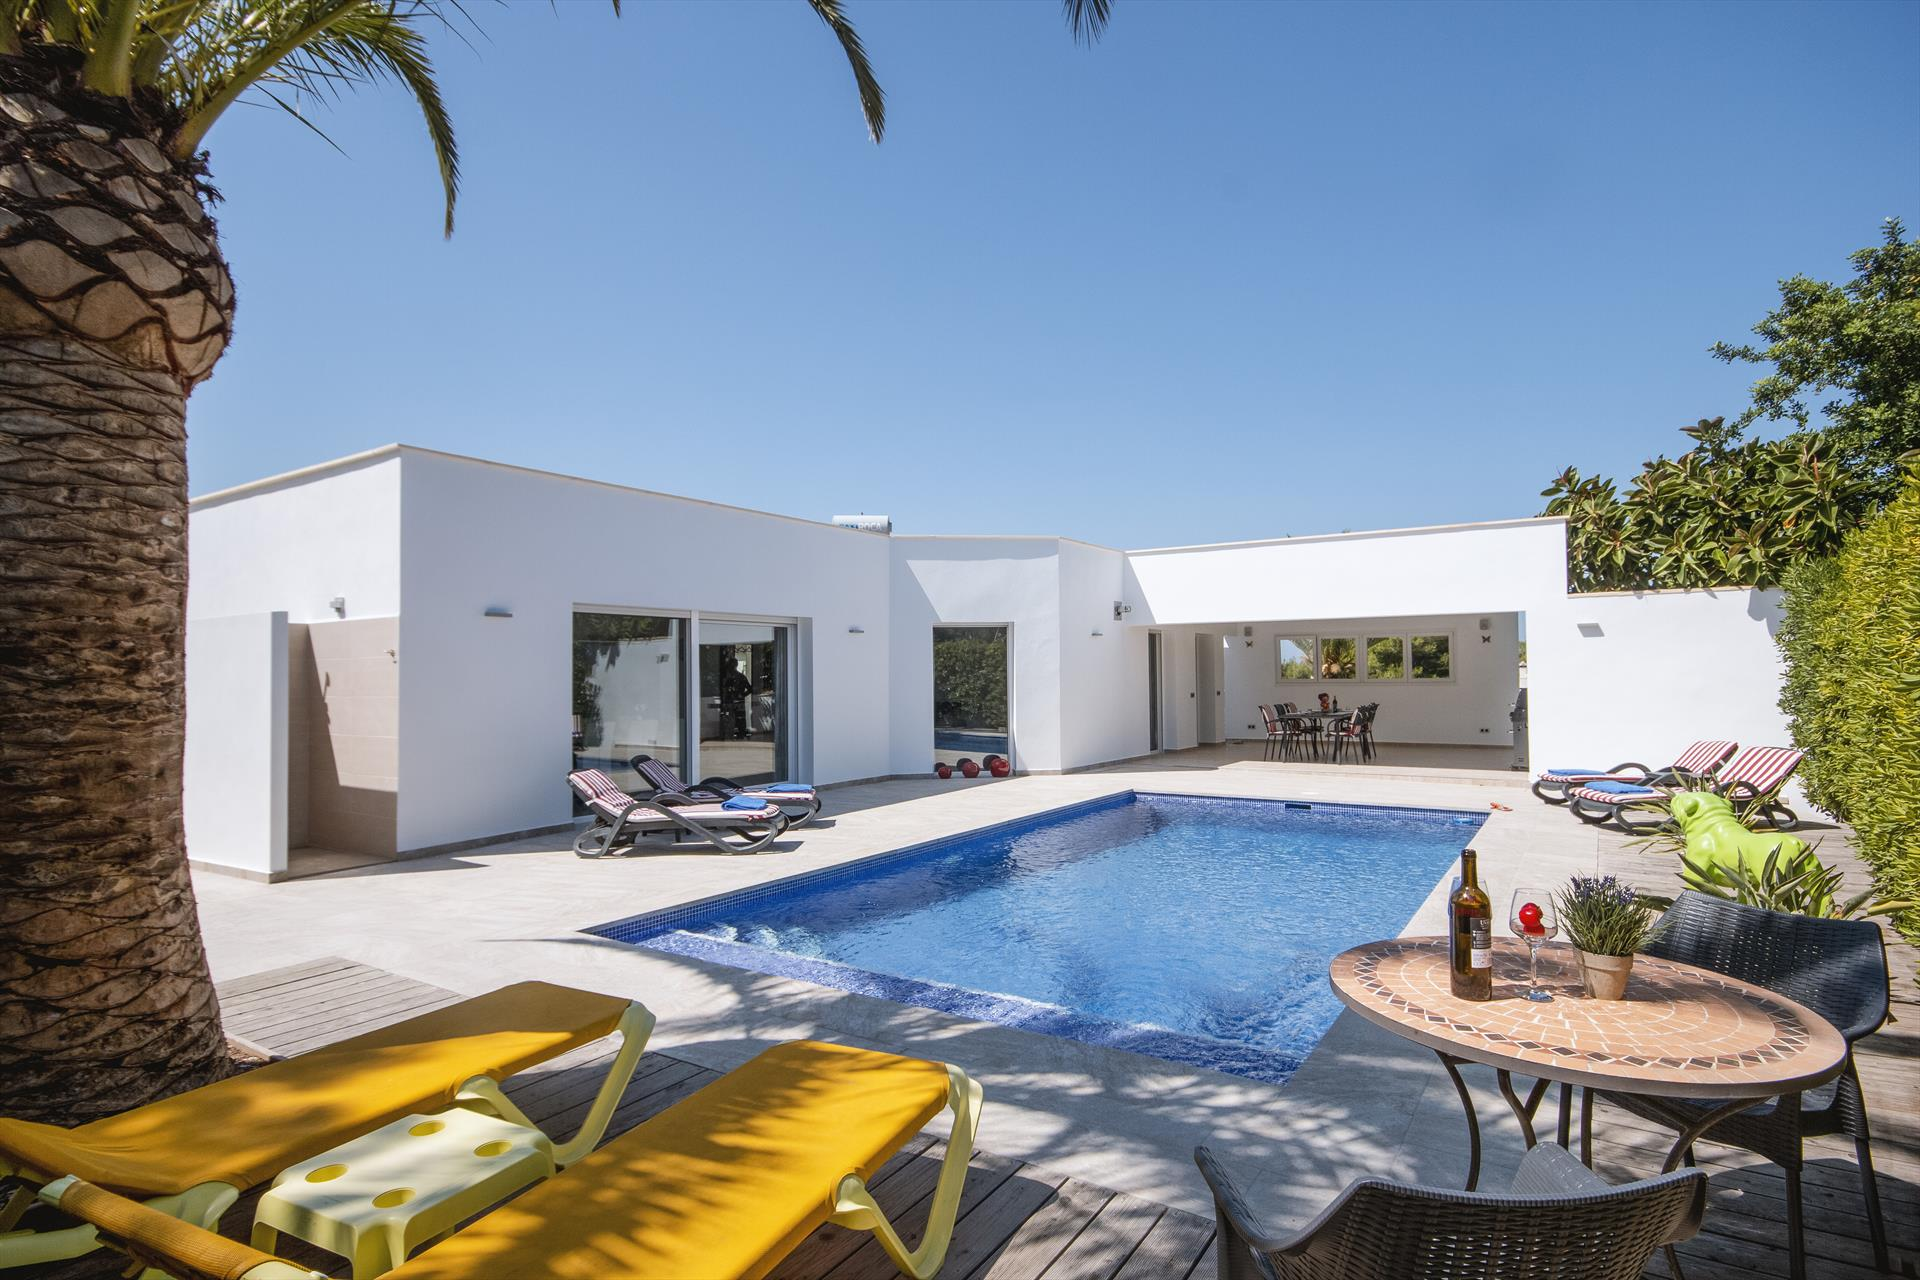 Mercedes, Beautiful and cheerful villa  with private pool in Javea, on the Costa Blanca, Spain for 4 persons.....